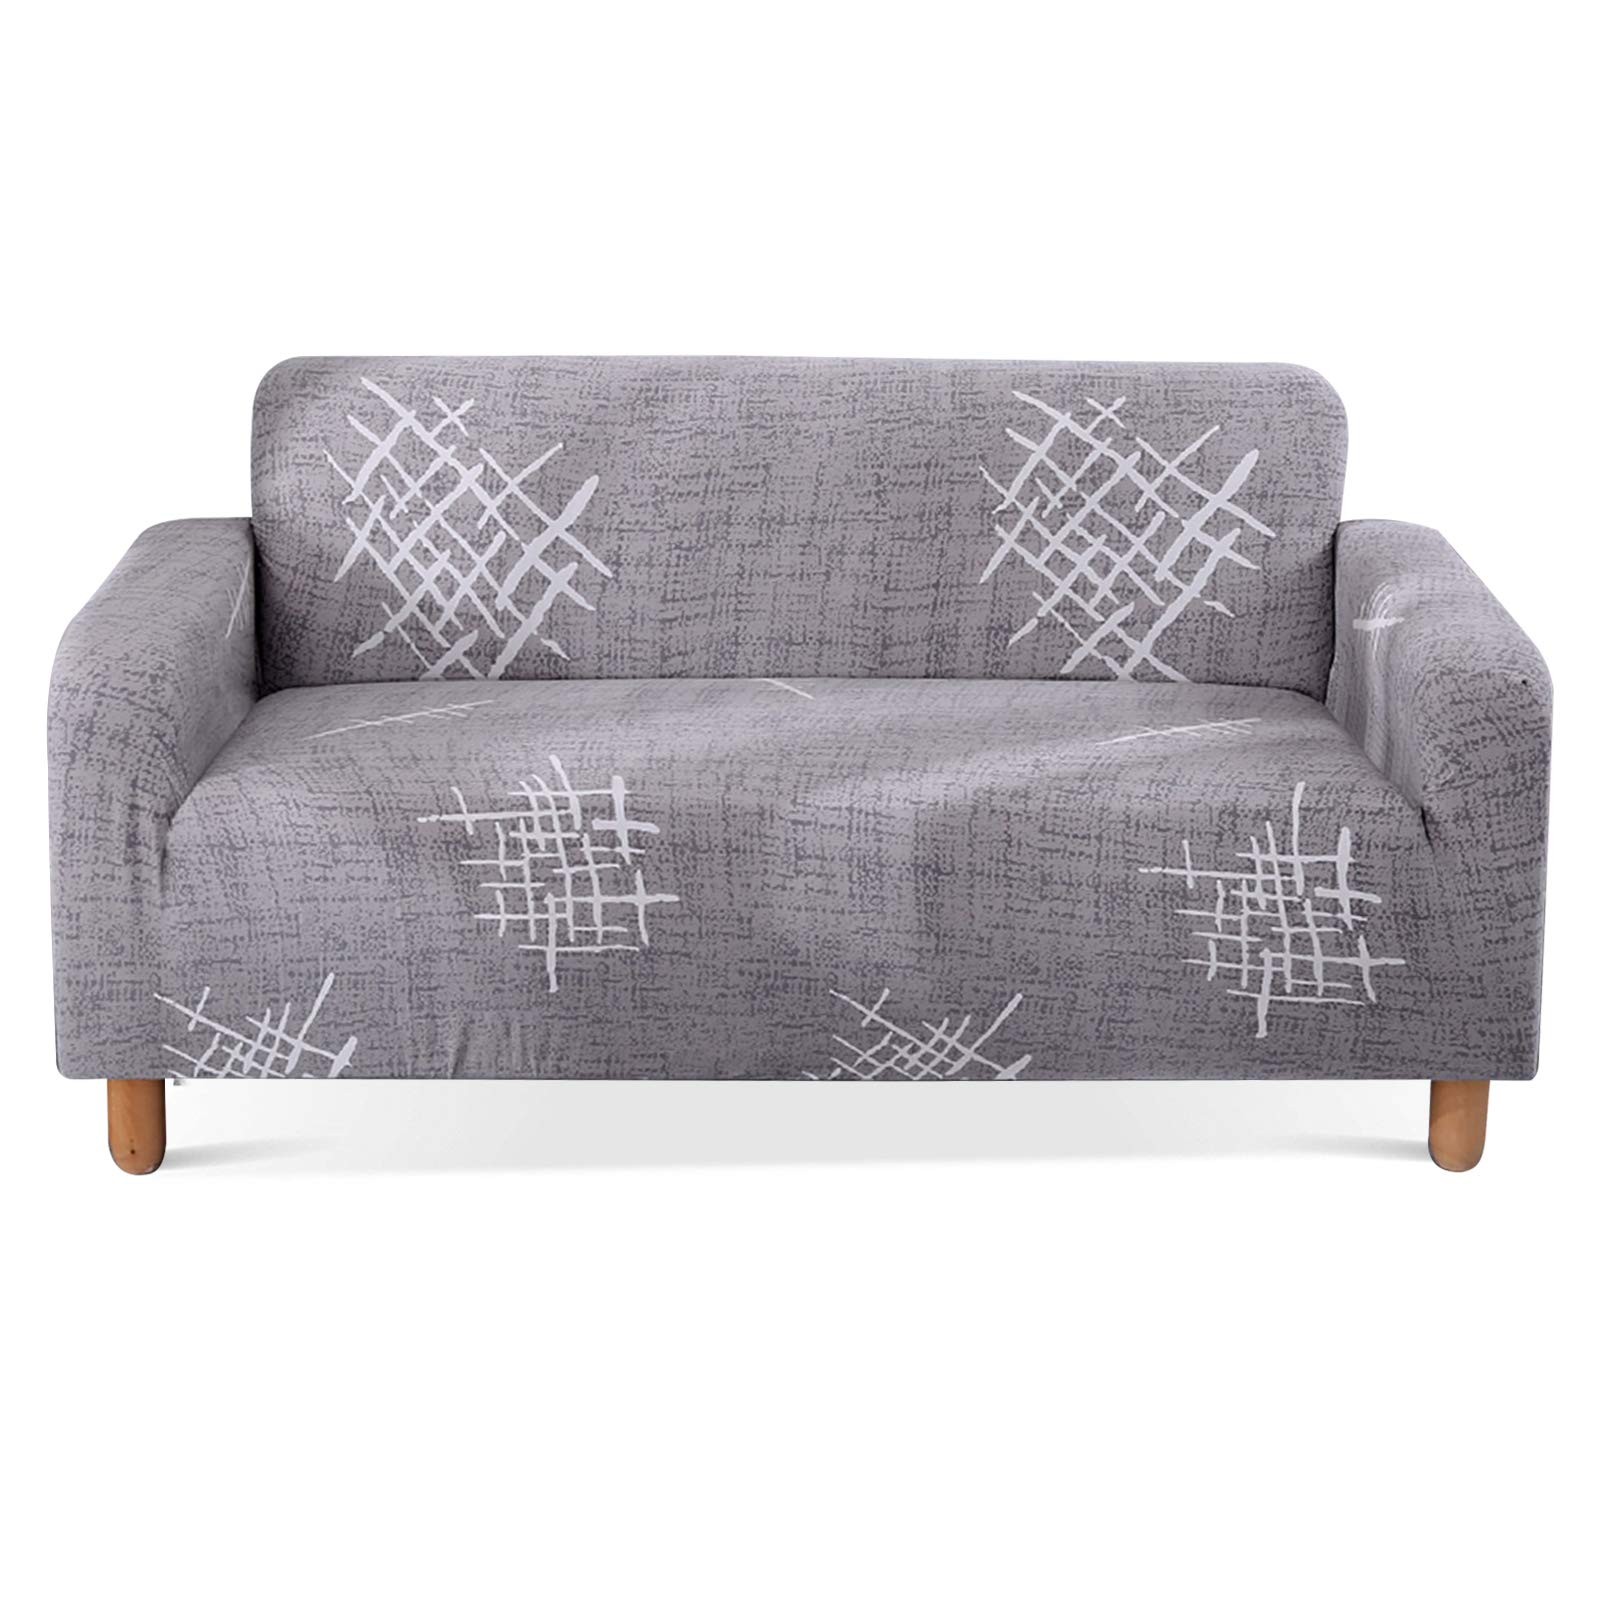 Lamberia Printed Sofa Cover Stretch Couch Cover Sofa Slipcovers for Couches and Loveseats with Two Pillow Cases (Gray Mark...